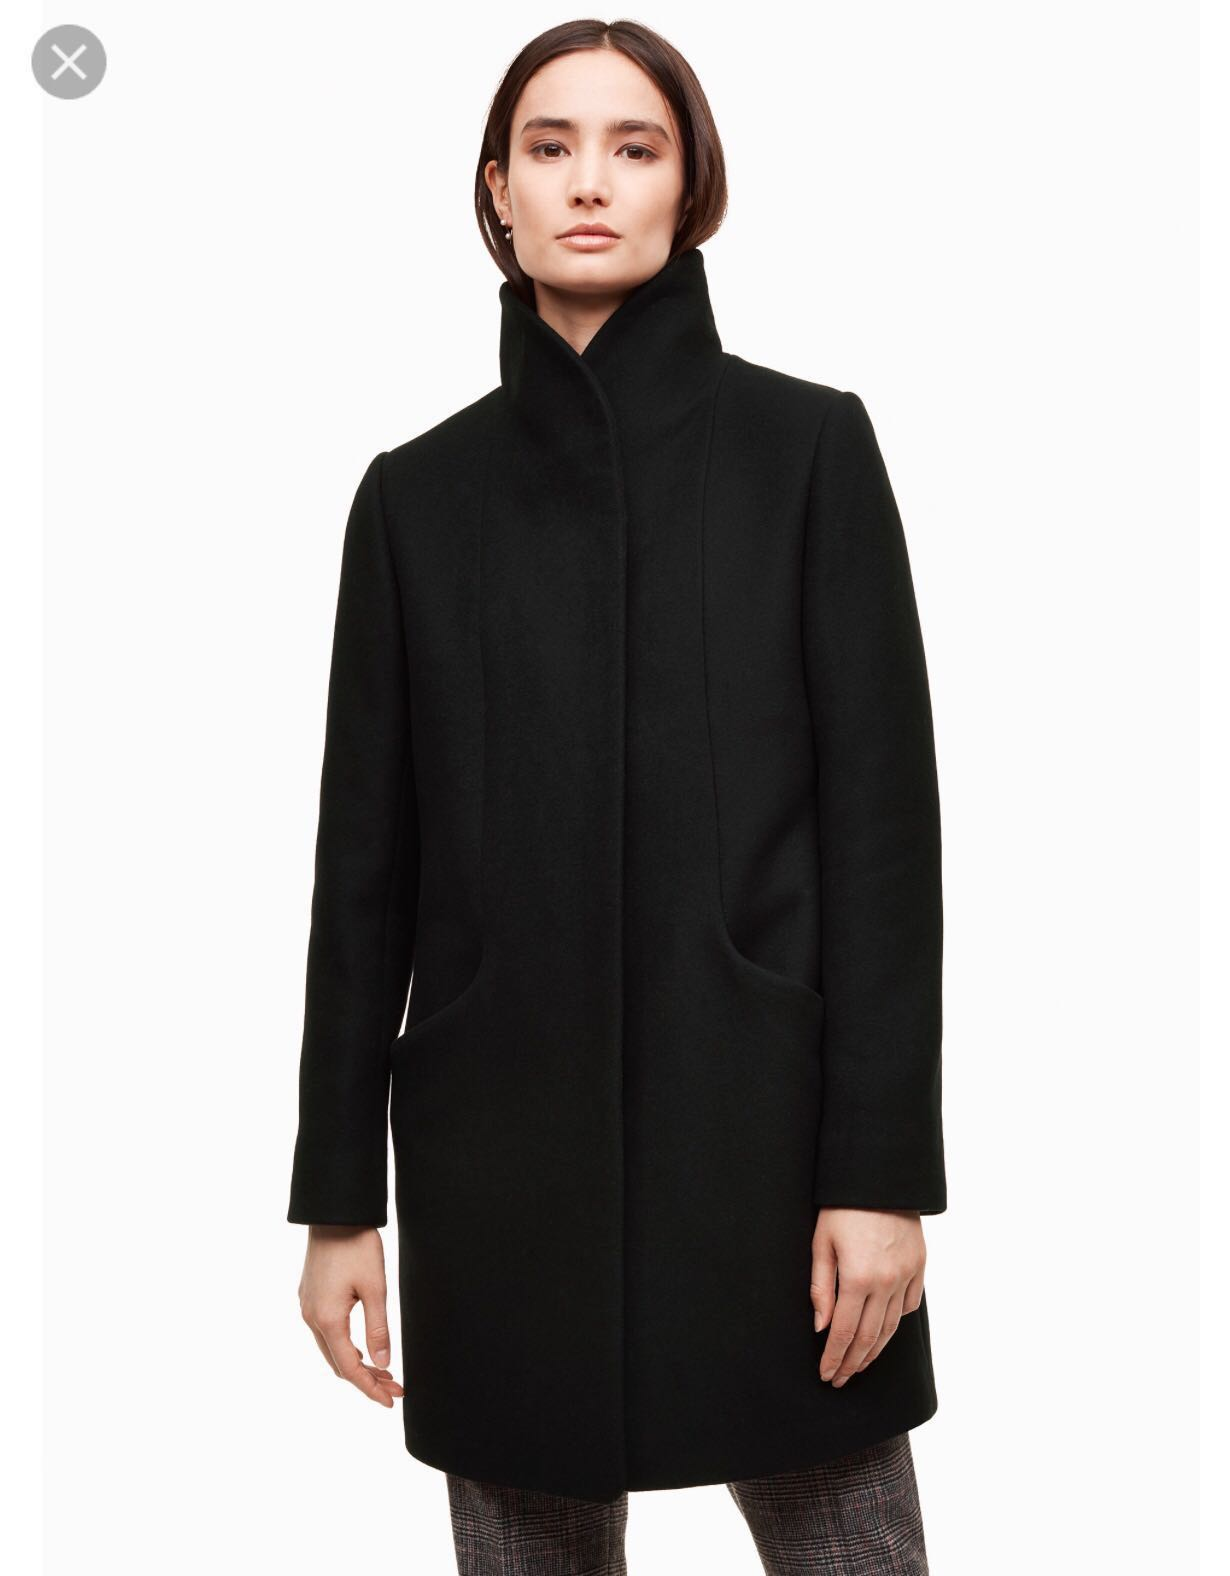 ARITZIA COCOON COAT BY WILFRED